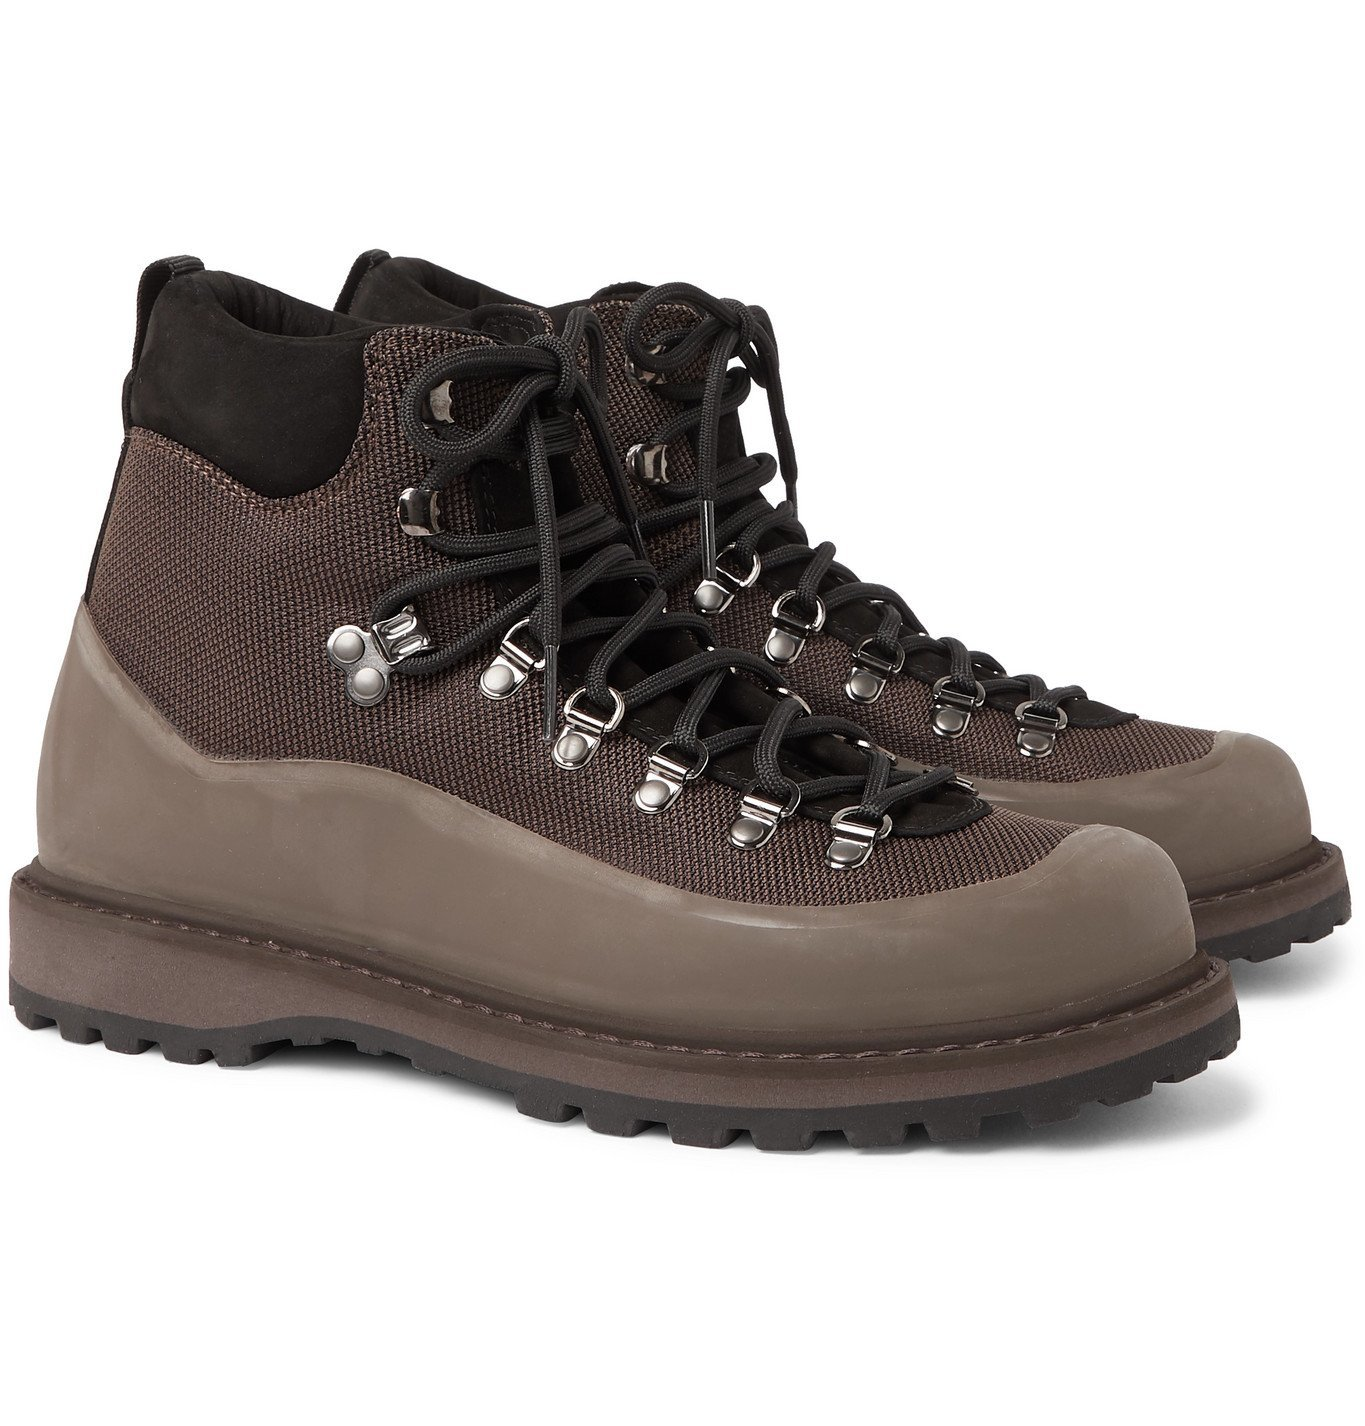 Photo: Diemme - Roccia Vet Rubber and Nubuck-Trimmed CORDURA Hiking Boots - Brown